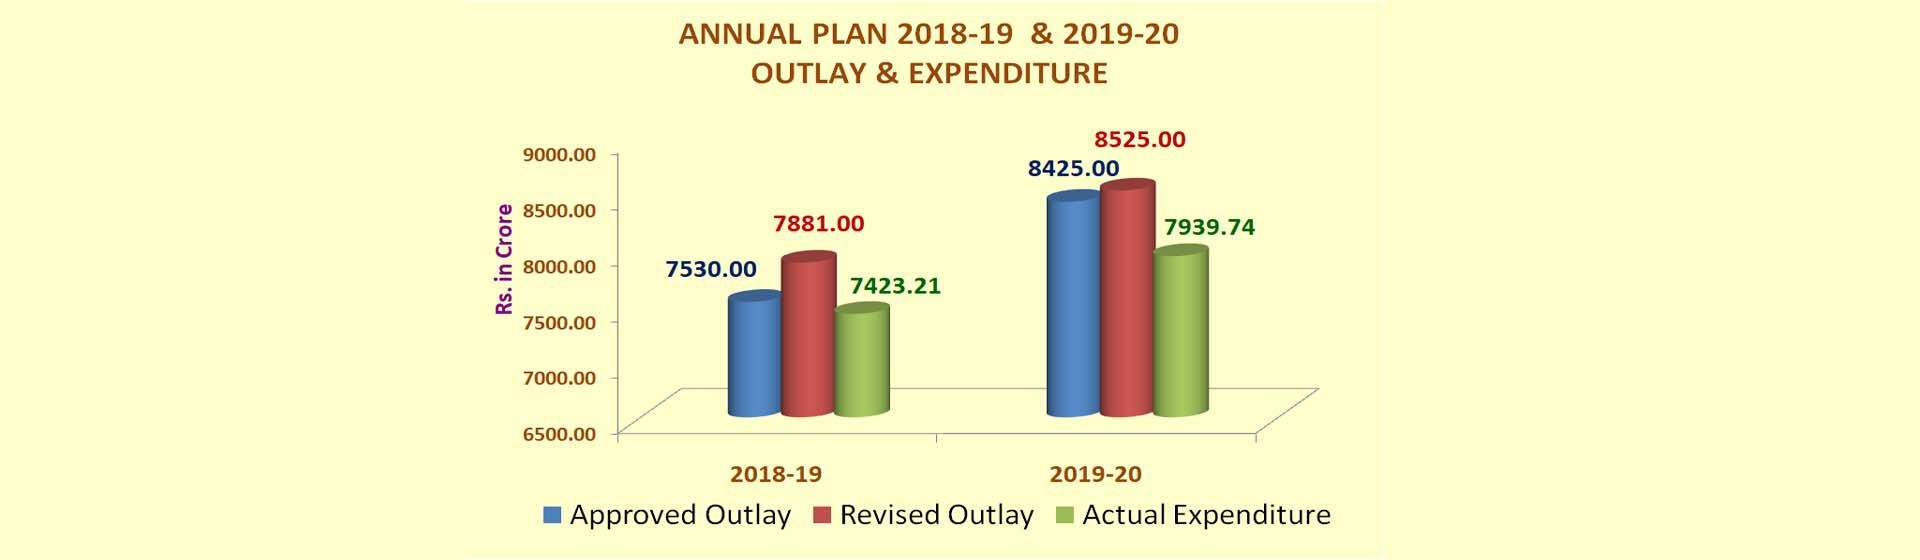 Image of Annual Plan 2018-2019 & 2019-2020